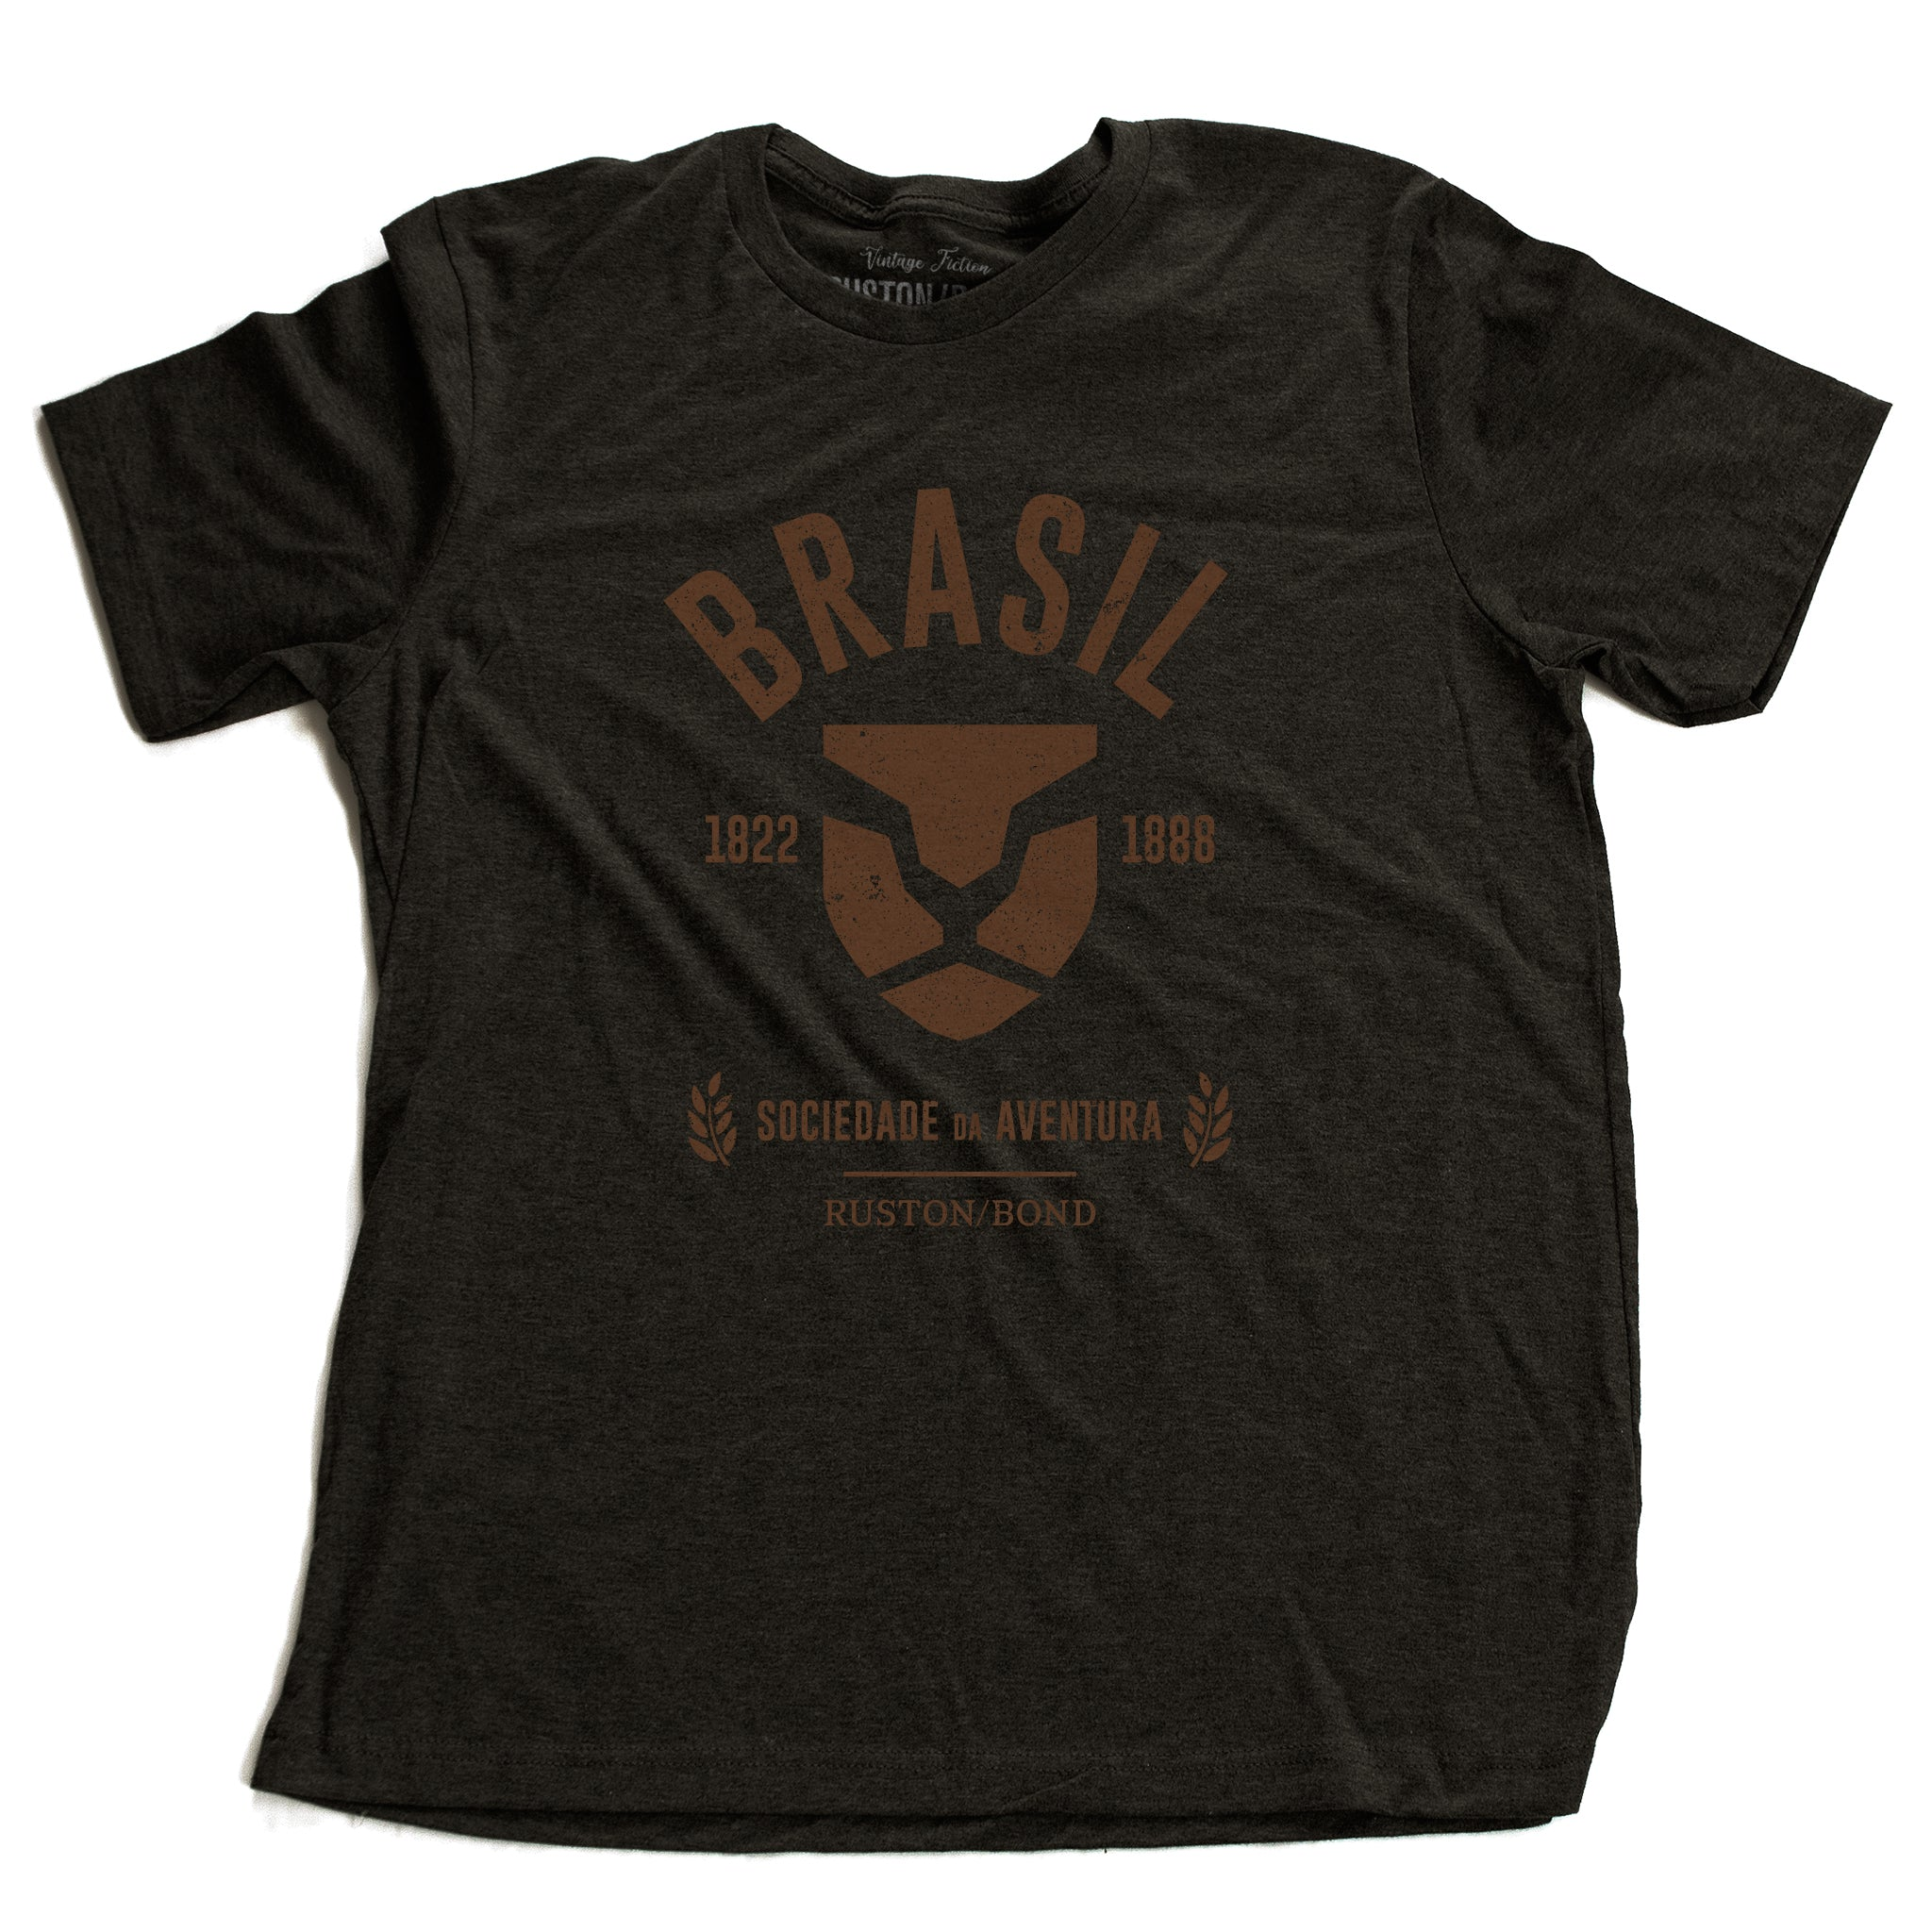 Dark Gray Heather fashion, retro-inspired t-shirt featuring classic graphic of a strong, minimalist Lion head, for a fictional adventure society in Brazil / Brasil from 1822 to 1888, by the brand Ruston/Bond. From wolfsaint.net